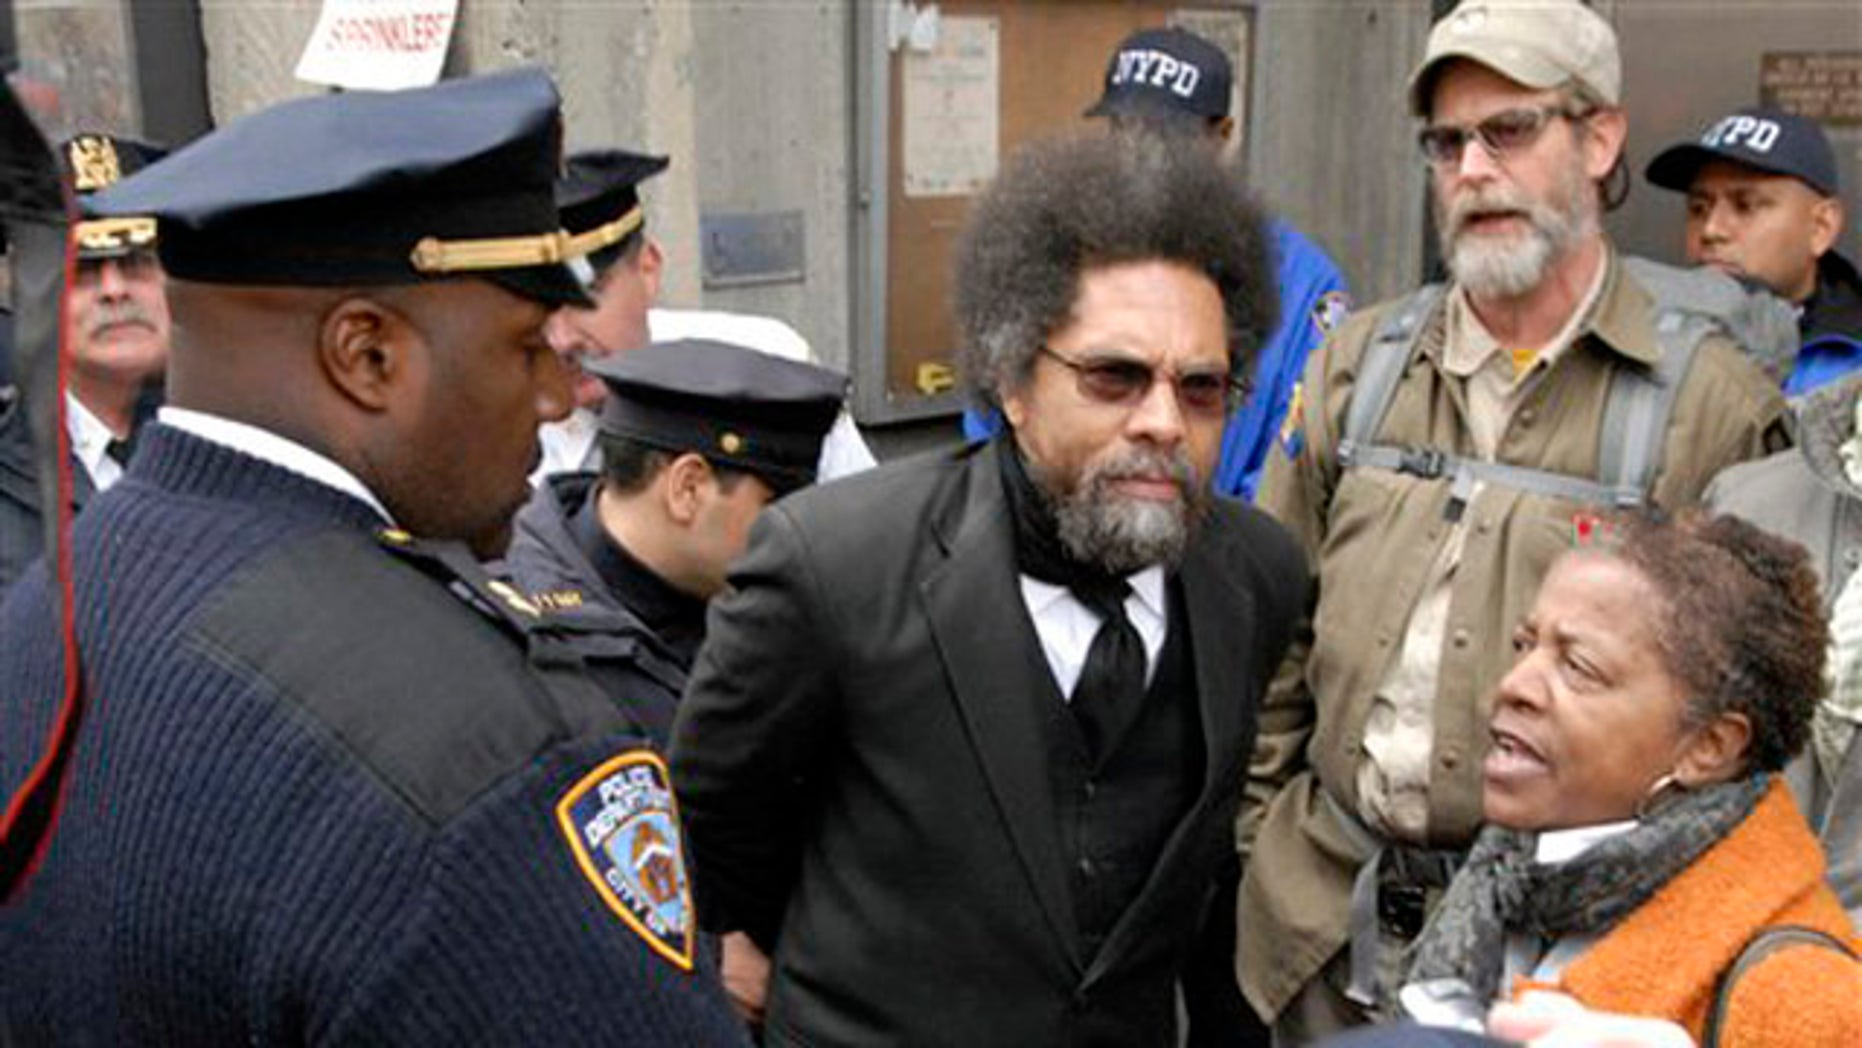 """Oct. 21, 2011: Political activist, Dr. Cornel West, center, is taken into custody by New York City police officers at a """"Stop and Frisk"""" policy protest in Manhattan's Harlem neighborhood in New York."""